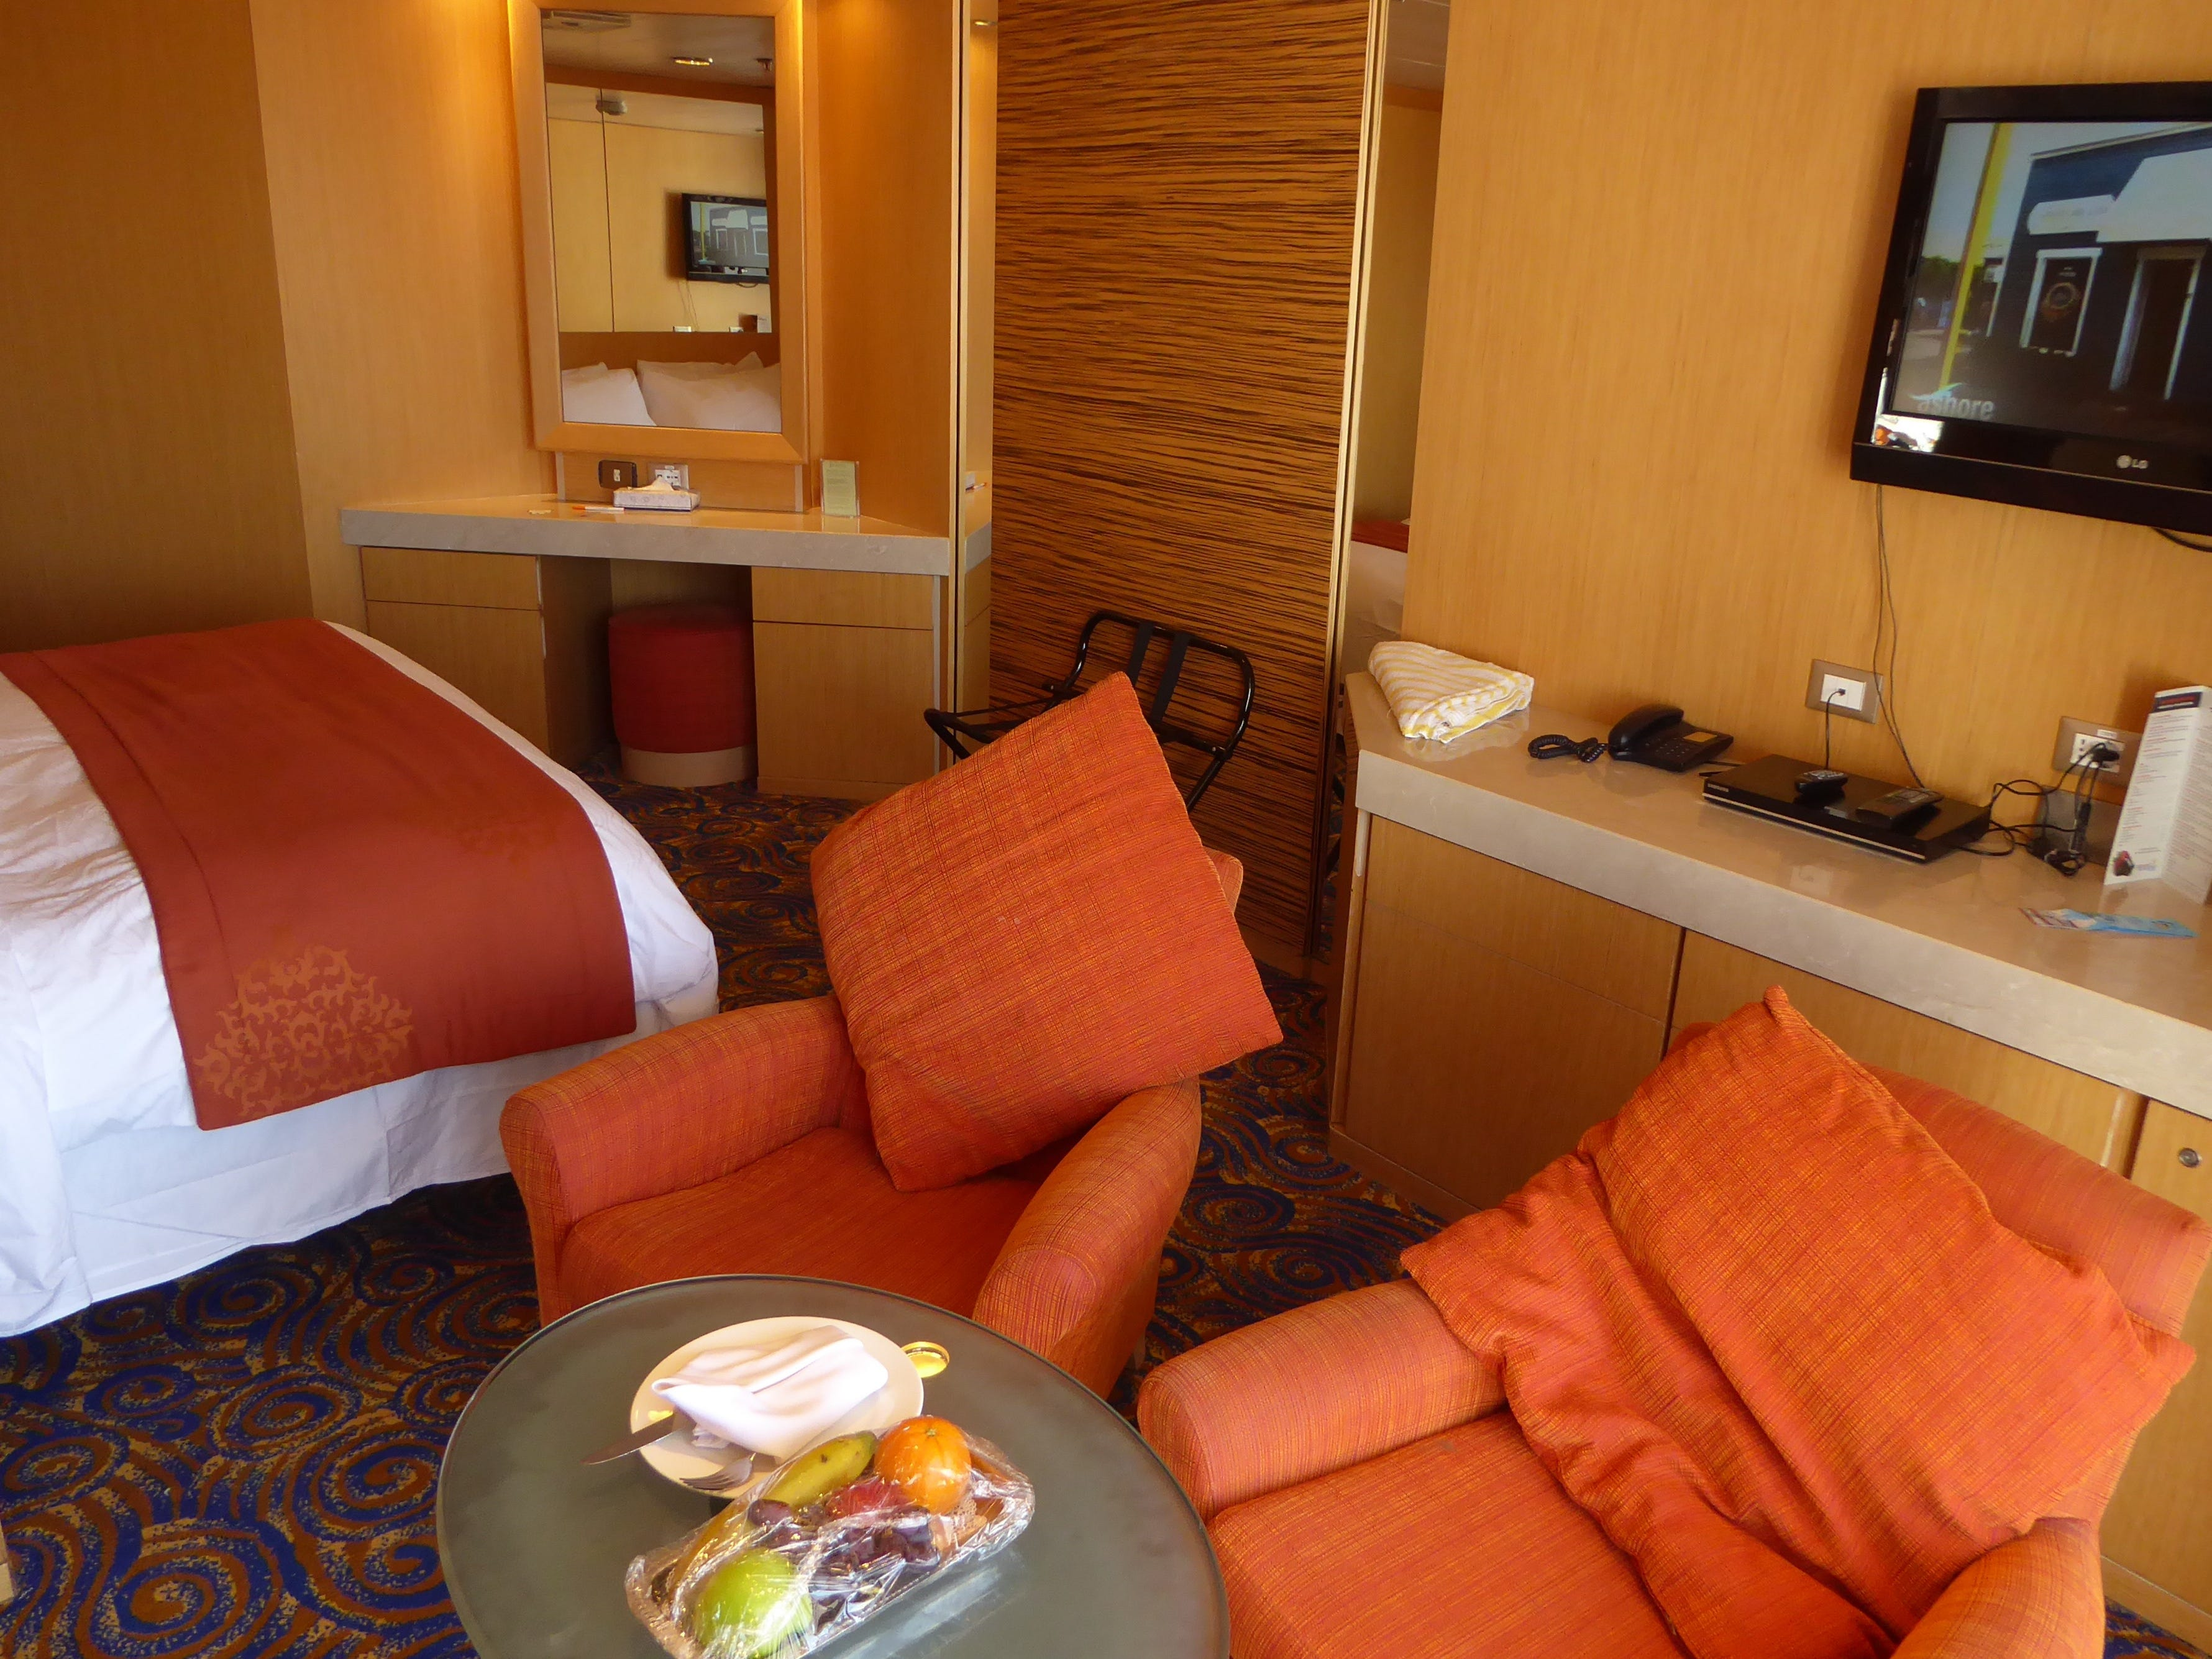 Terrace Suites have a double bed and a living room area.